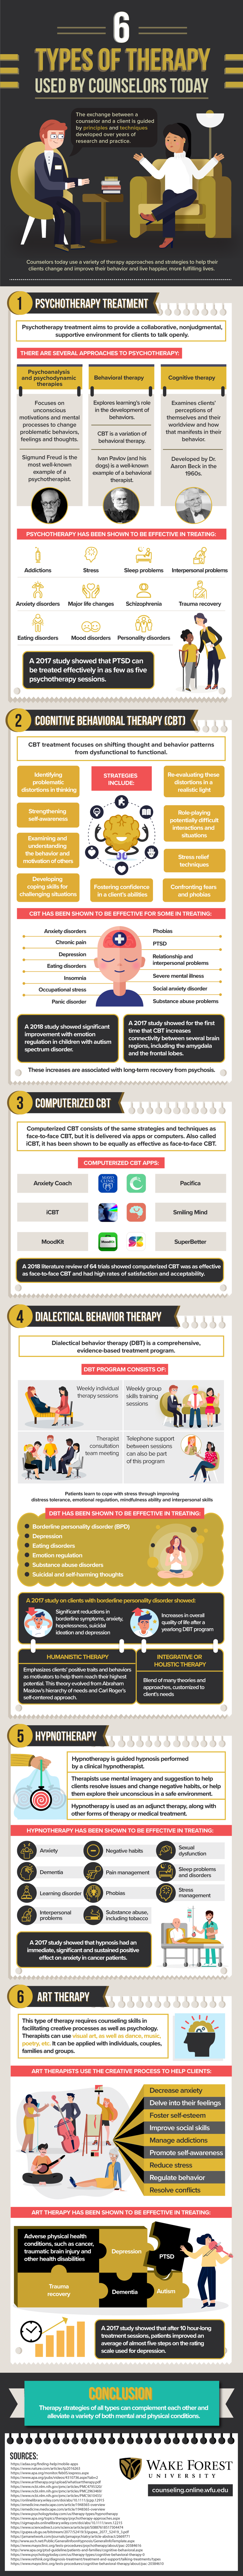 How counselors deploy different therapeutic techniques to help their clients work through various issues.